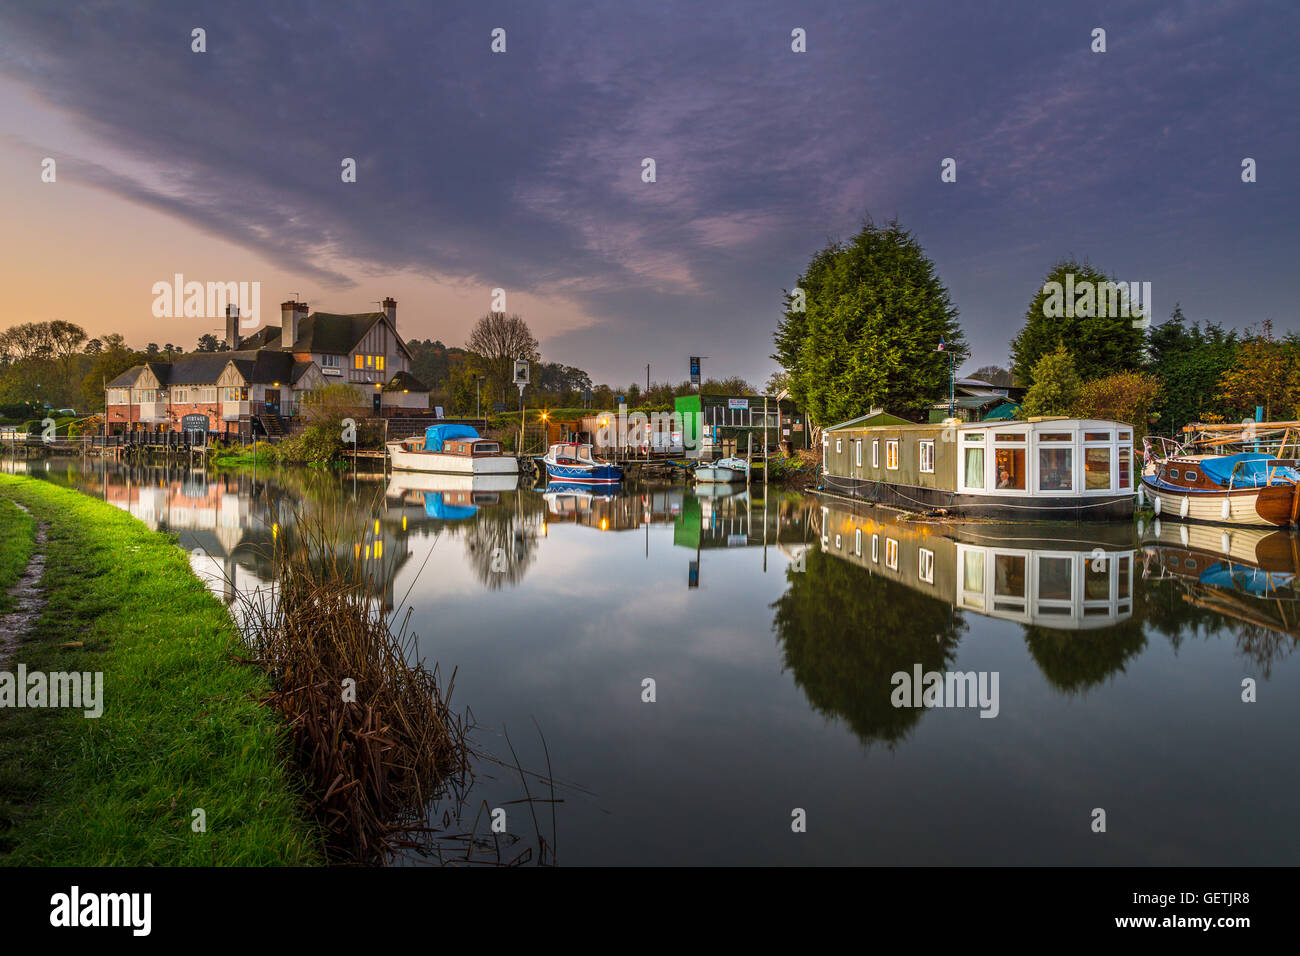 Houseboat and cruisers on the River Soar at Kegworth. - Stock Image